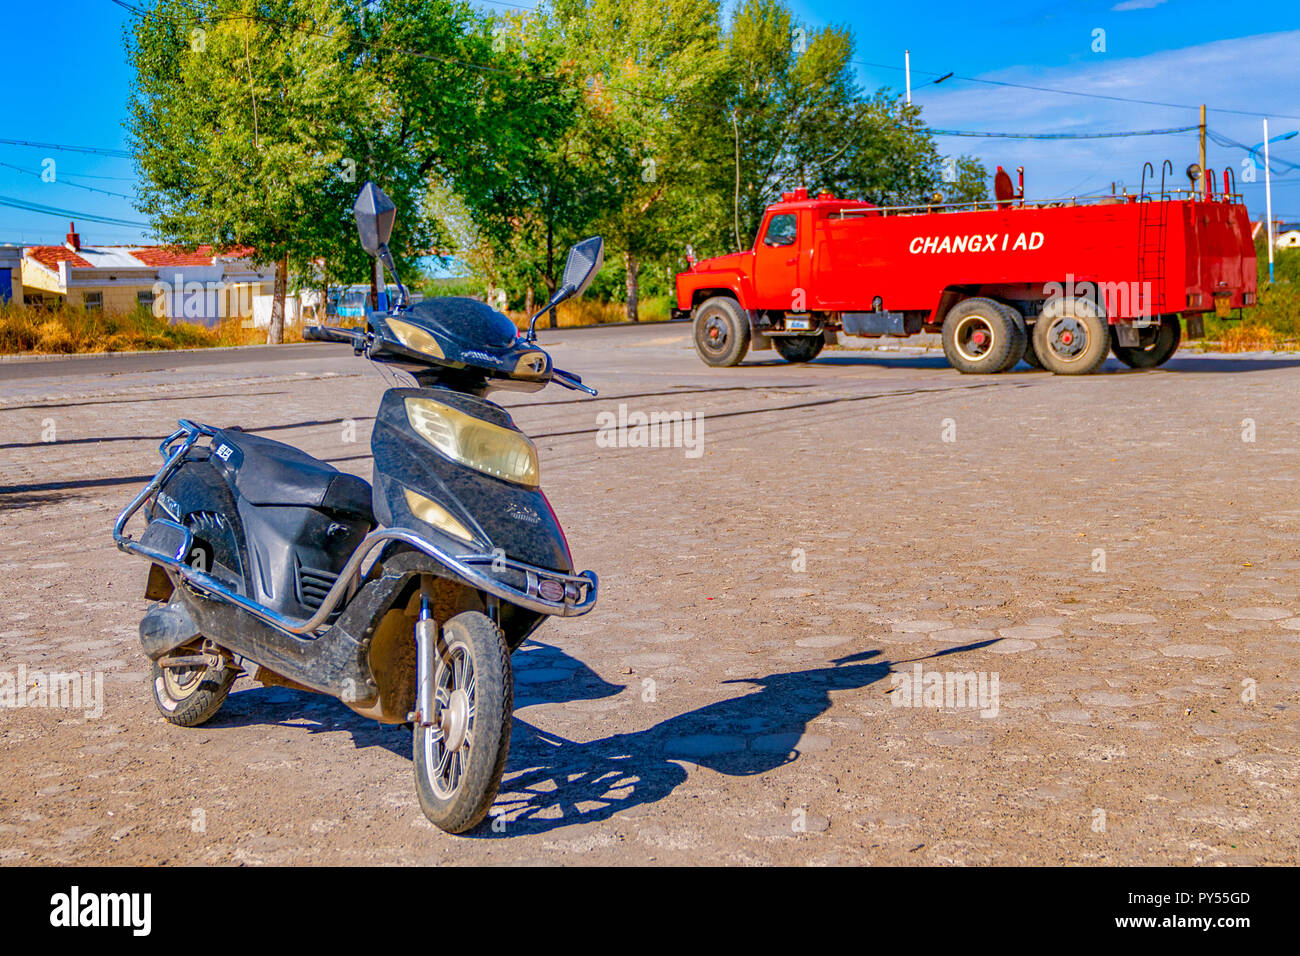 Mundane Everyday Scenes in a Village in Hailar, Inner Mongolia, China During Autumn - Stock Image